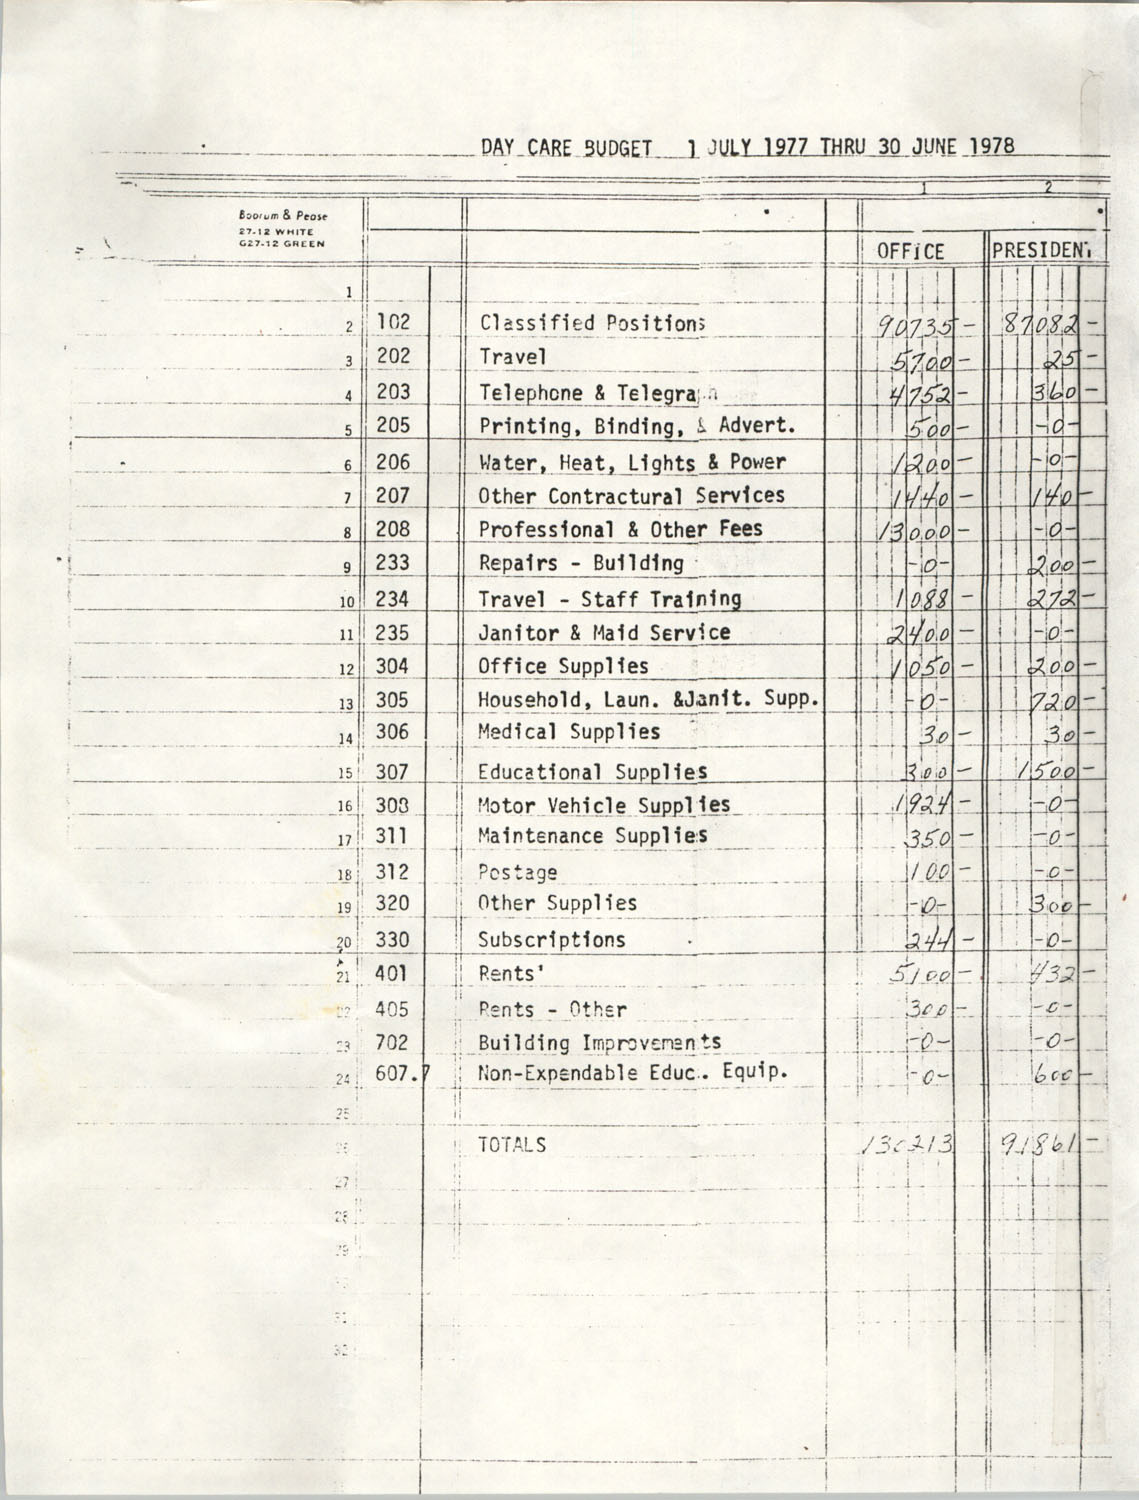 Day Care Budget, July 1, 1977 through June 30, 1978